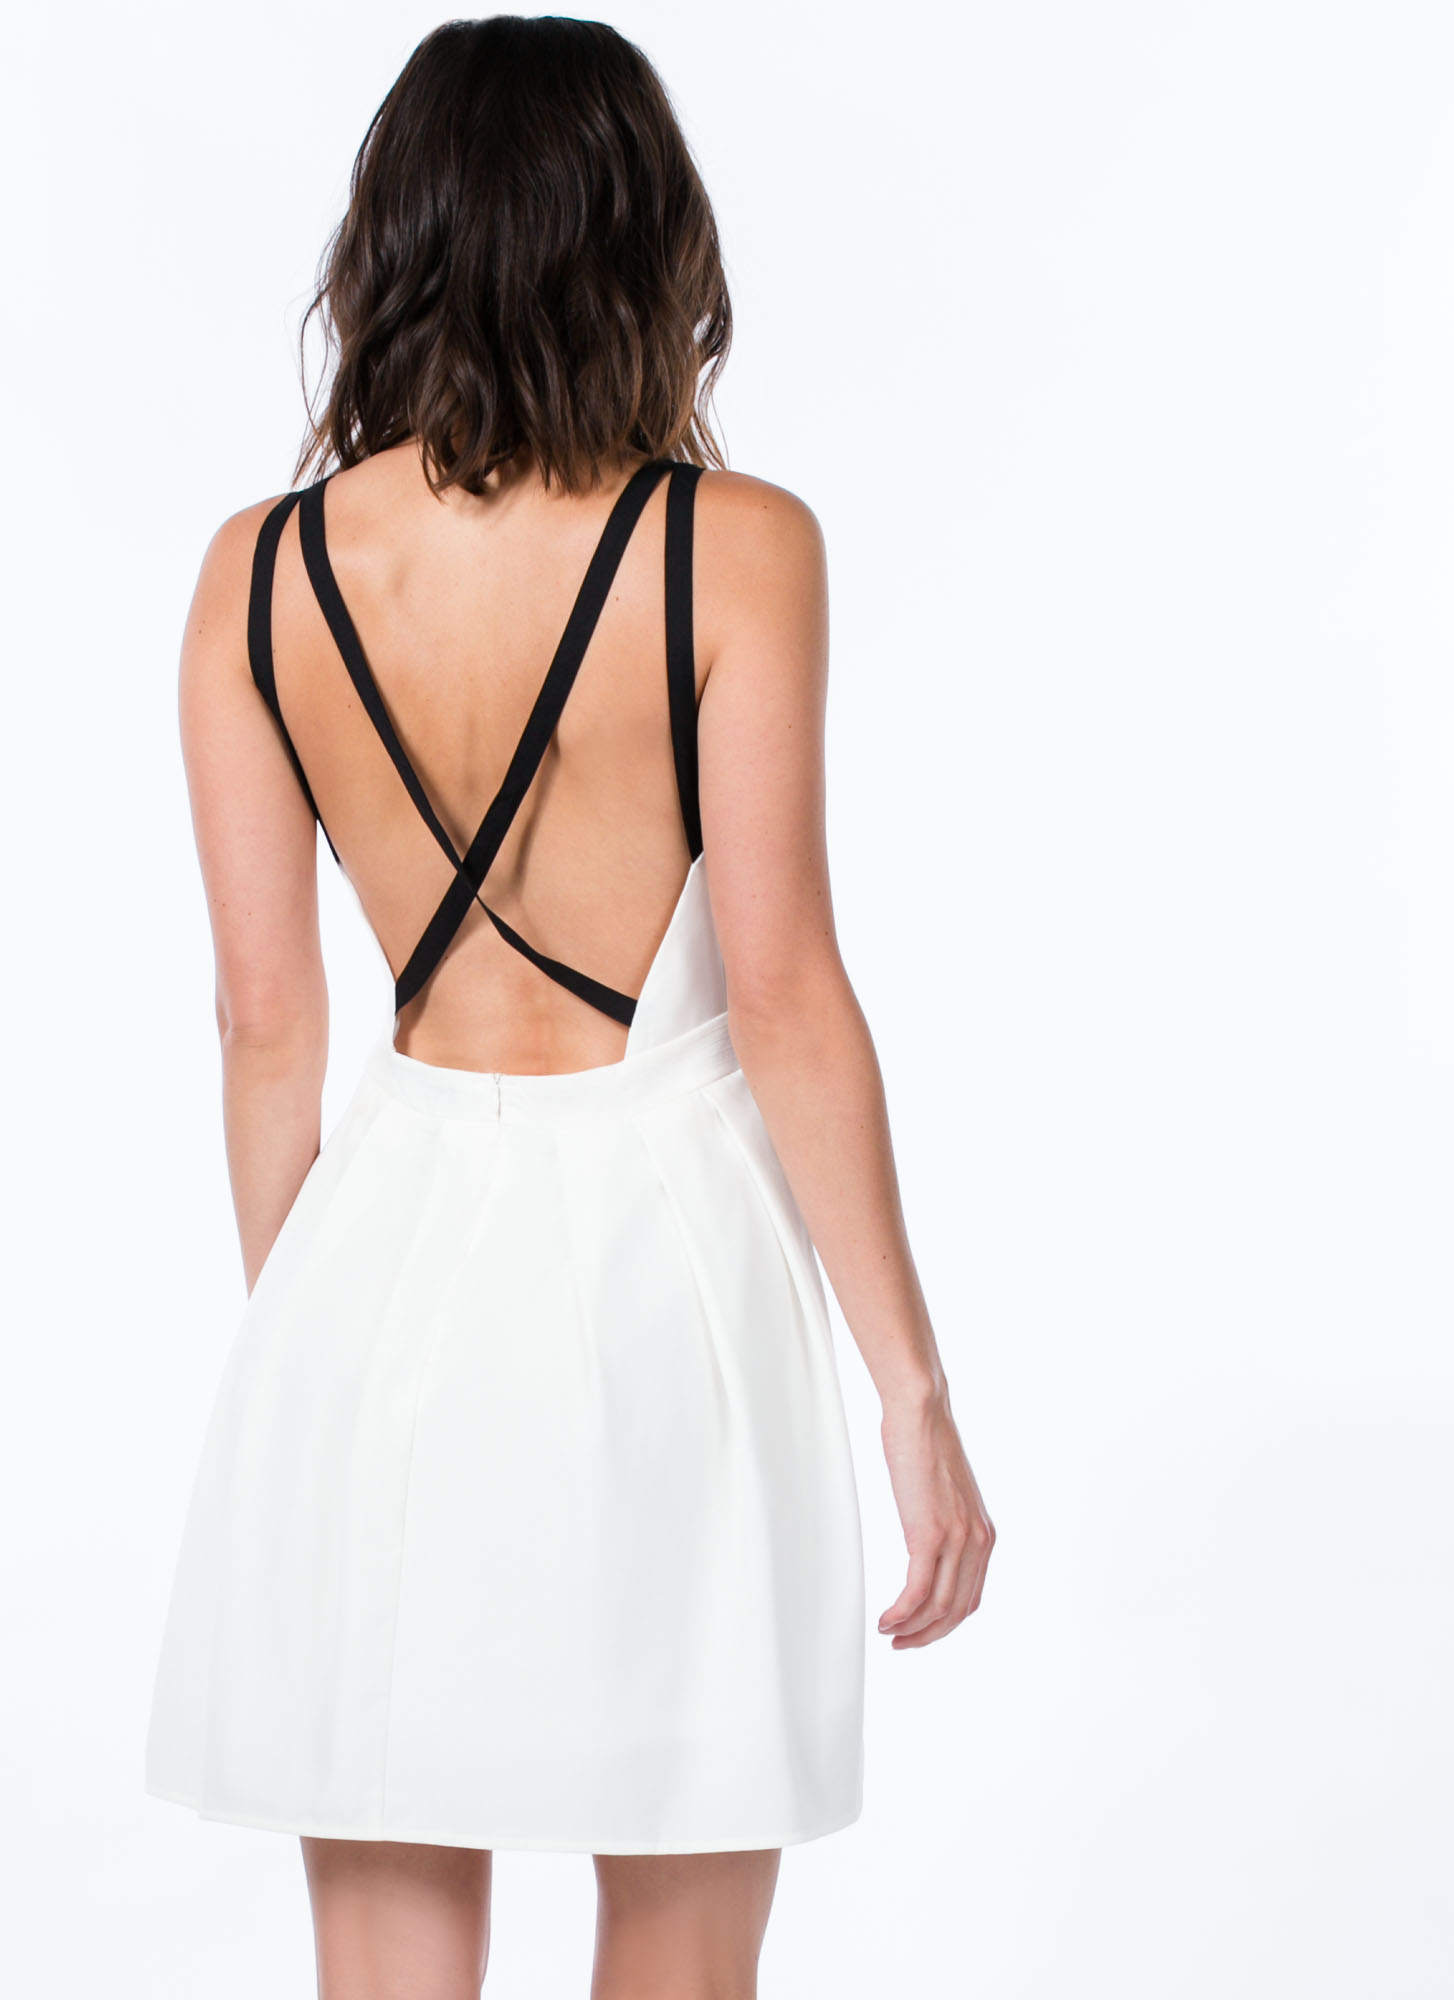 Pleat The Fifth Strappy Skater Dress WHITE (Final Sale)